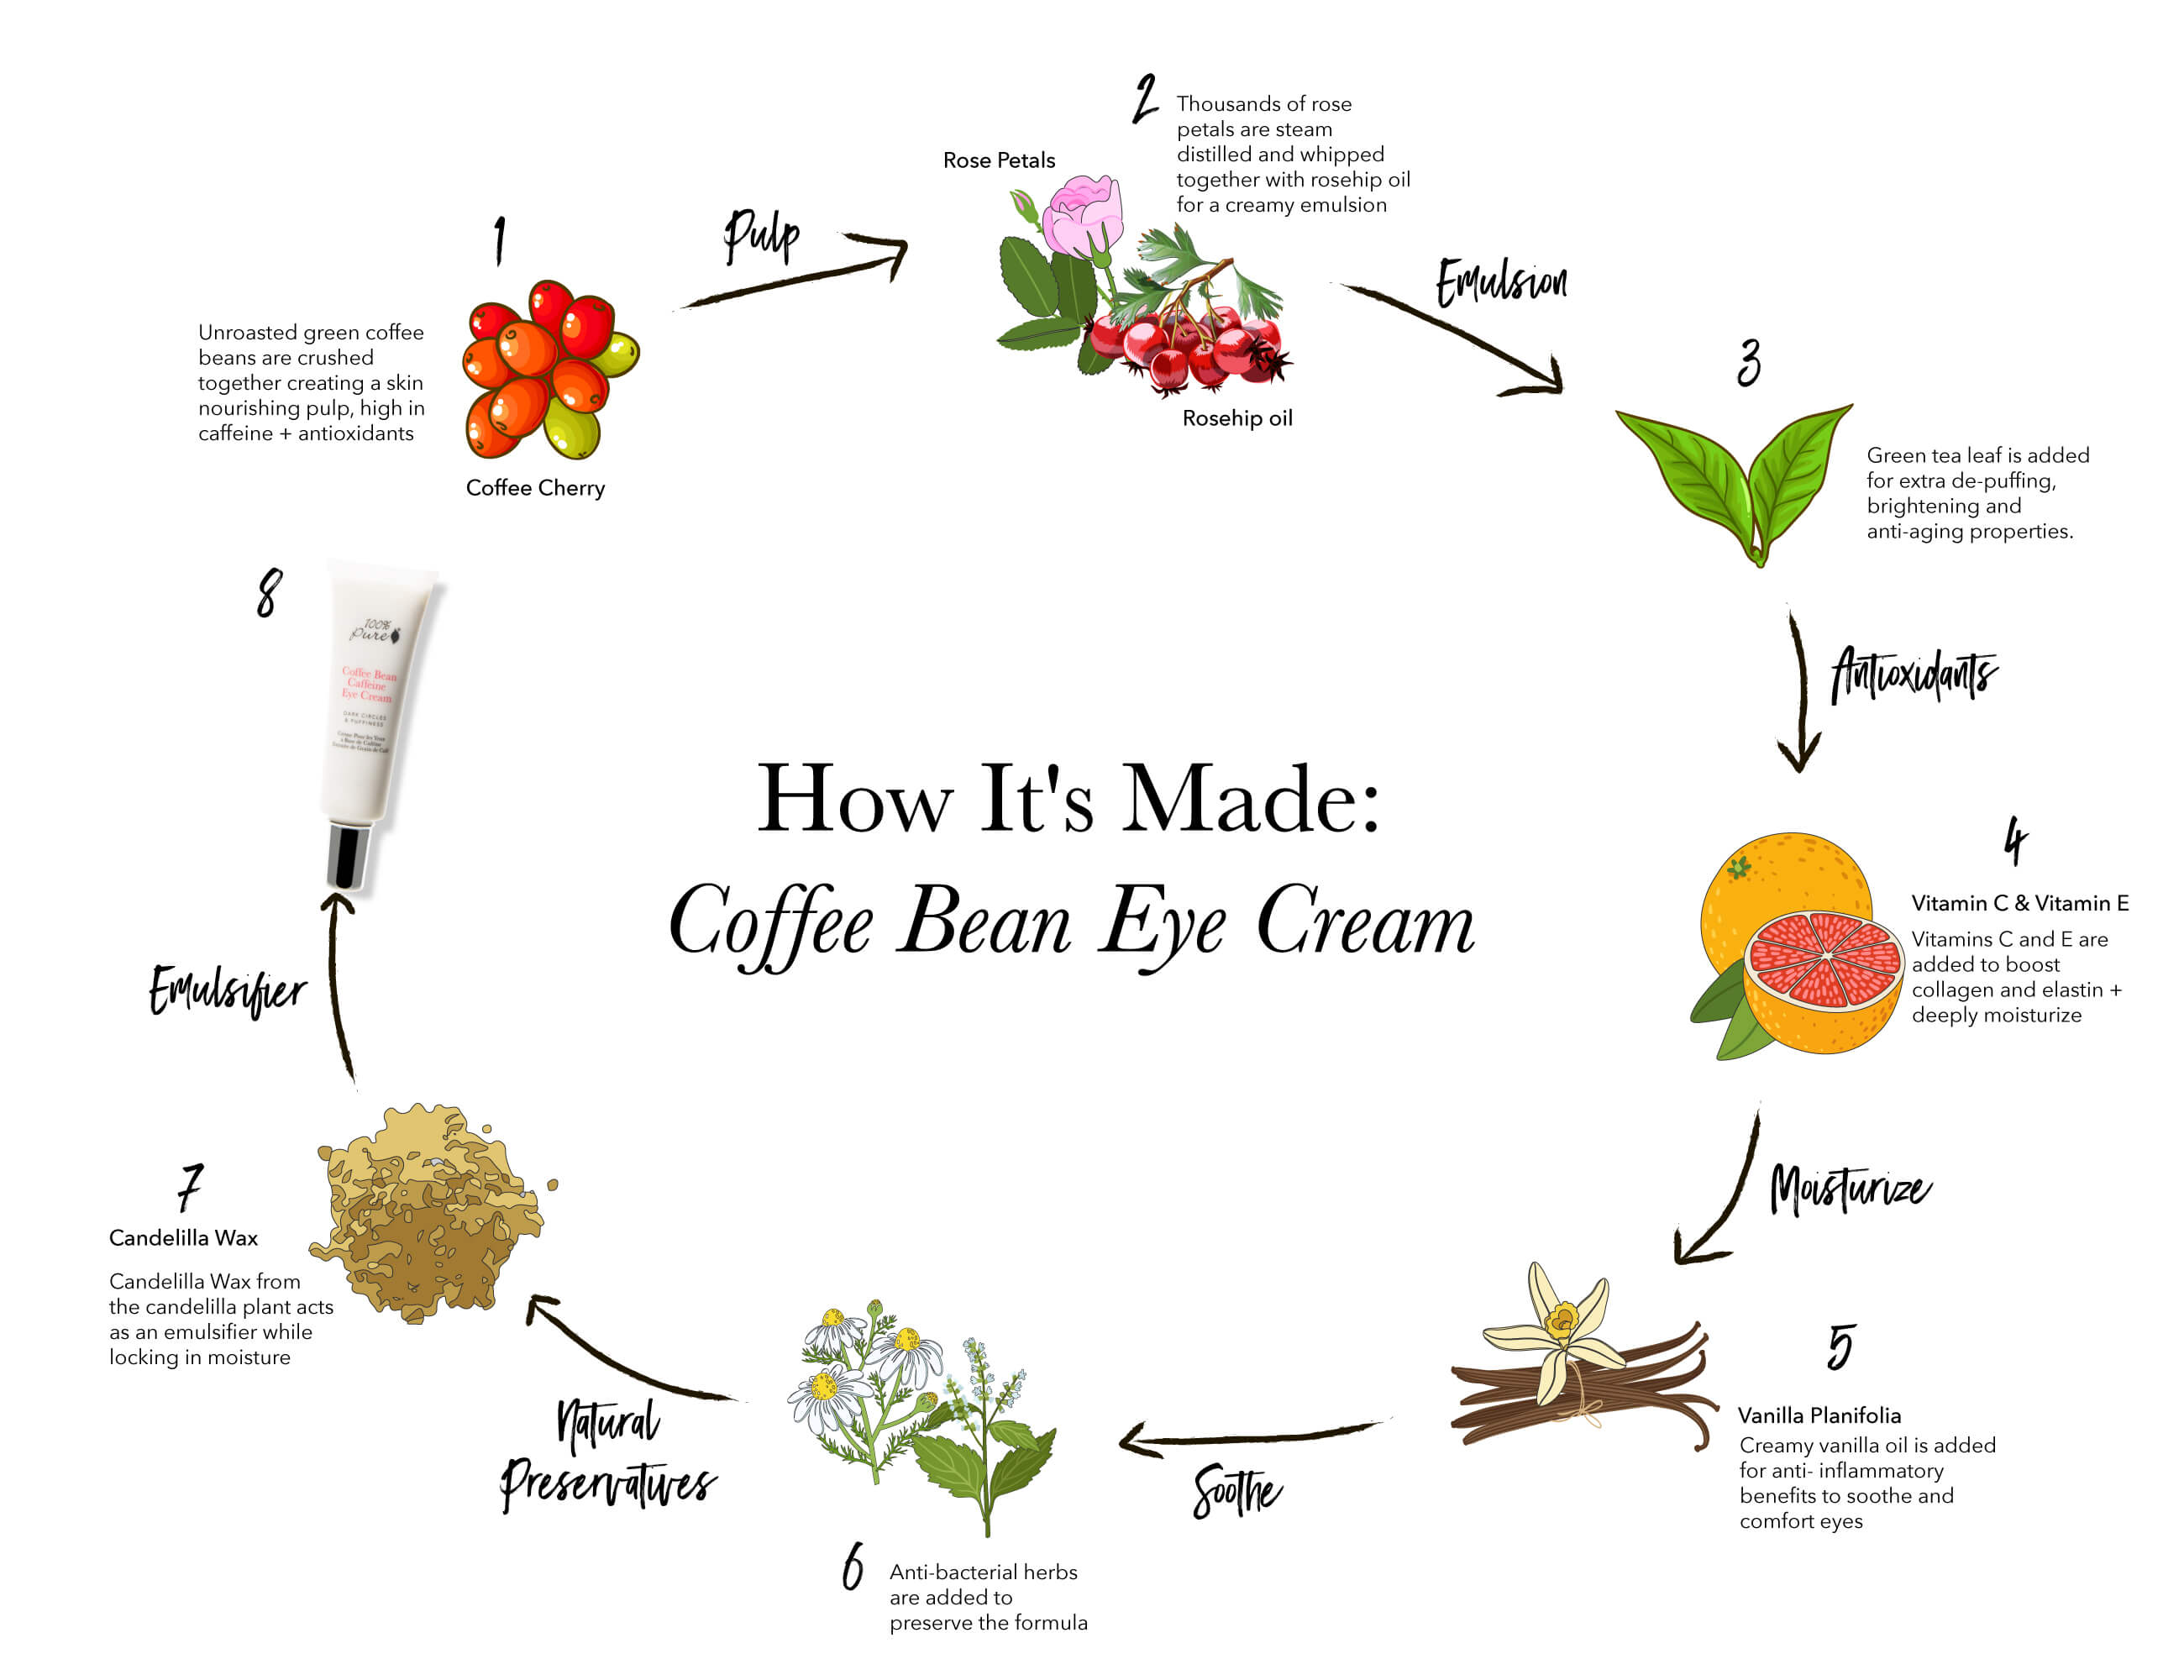 Coffee Bean Eye Cream